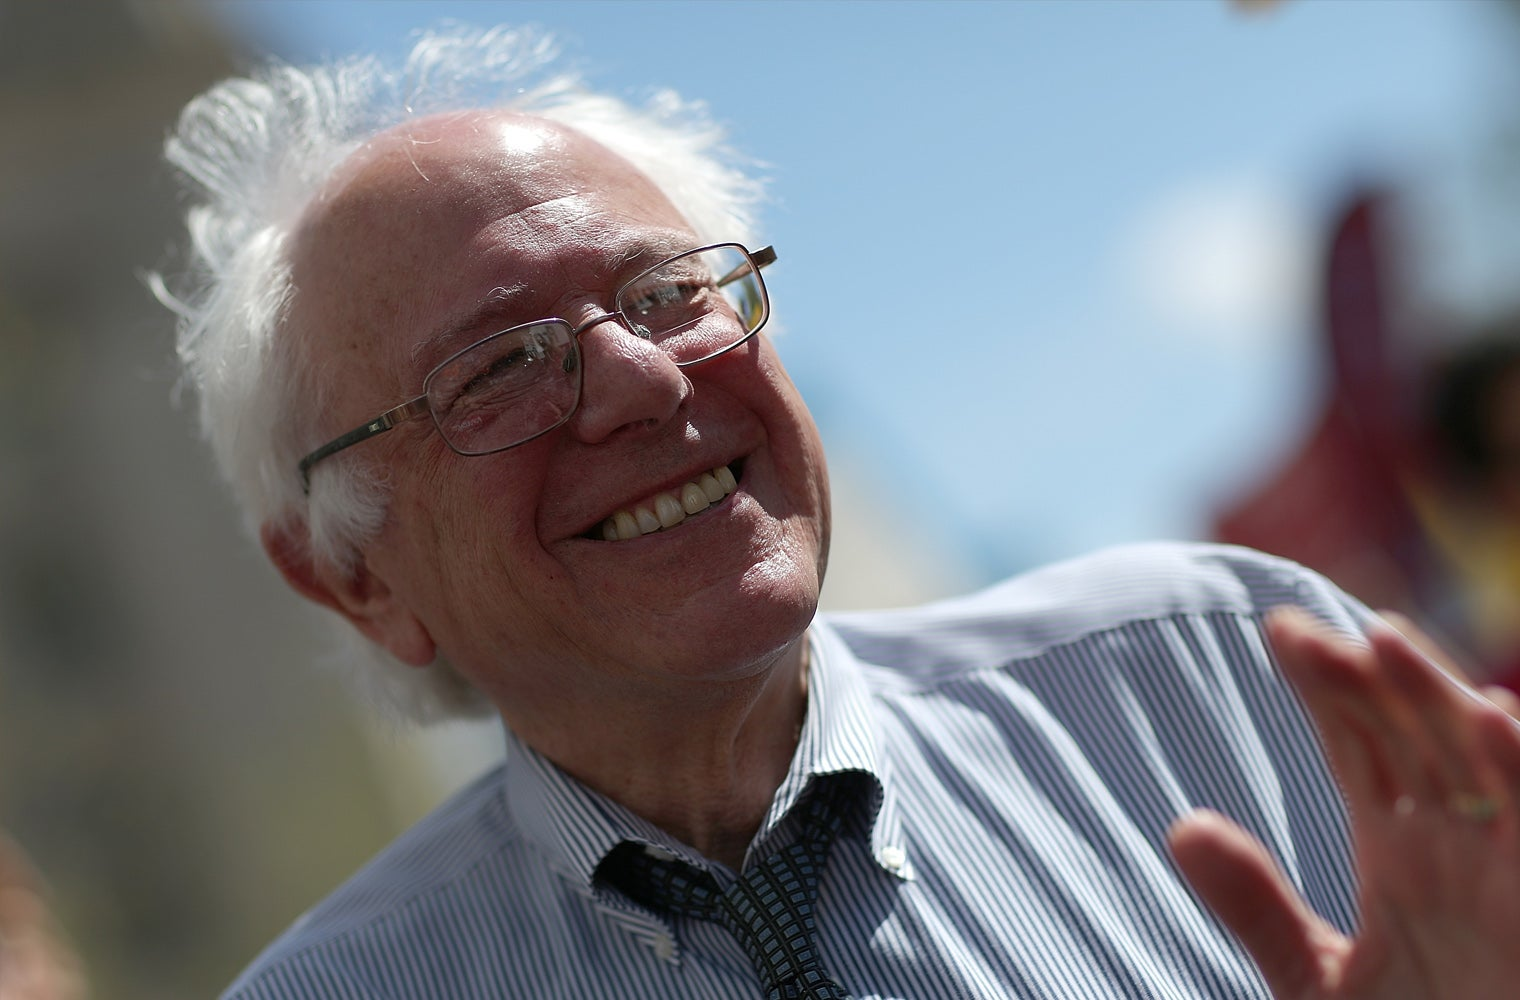 Bernie Sanders has the right approach to health care say 2,000 doctors